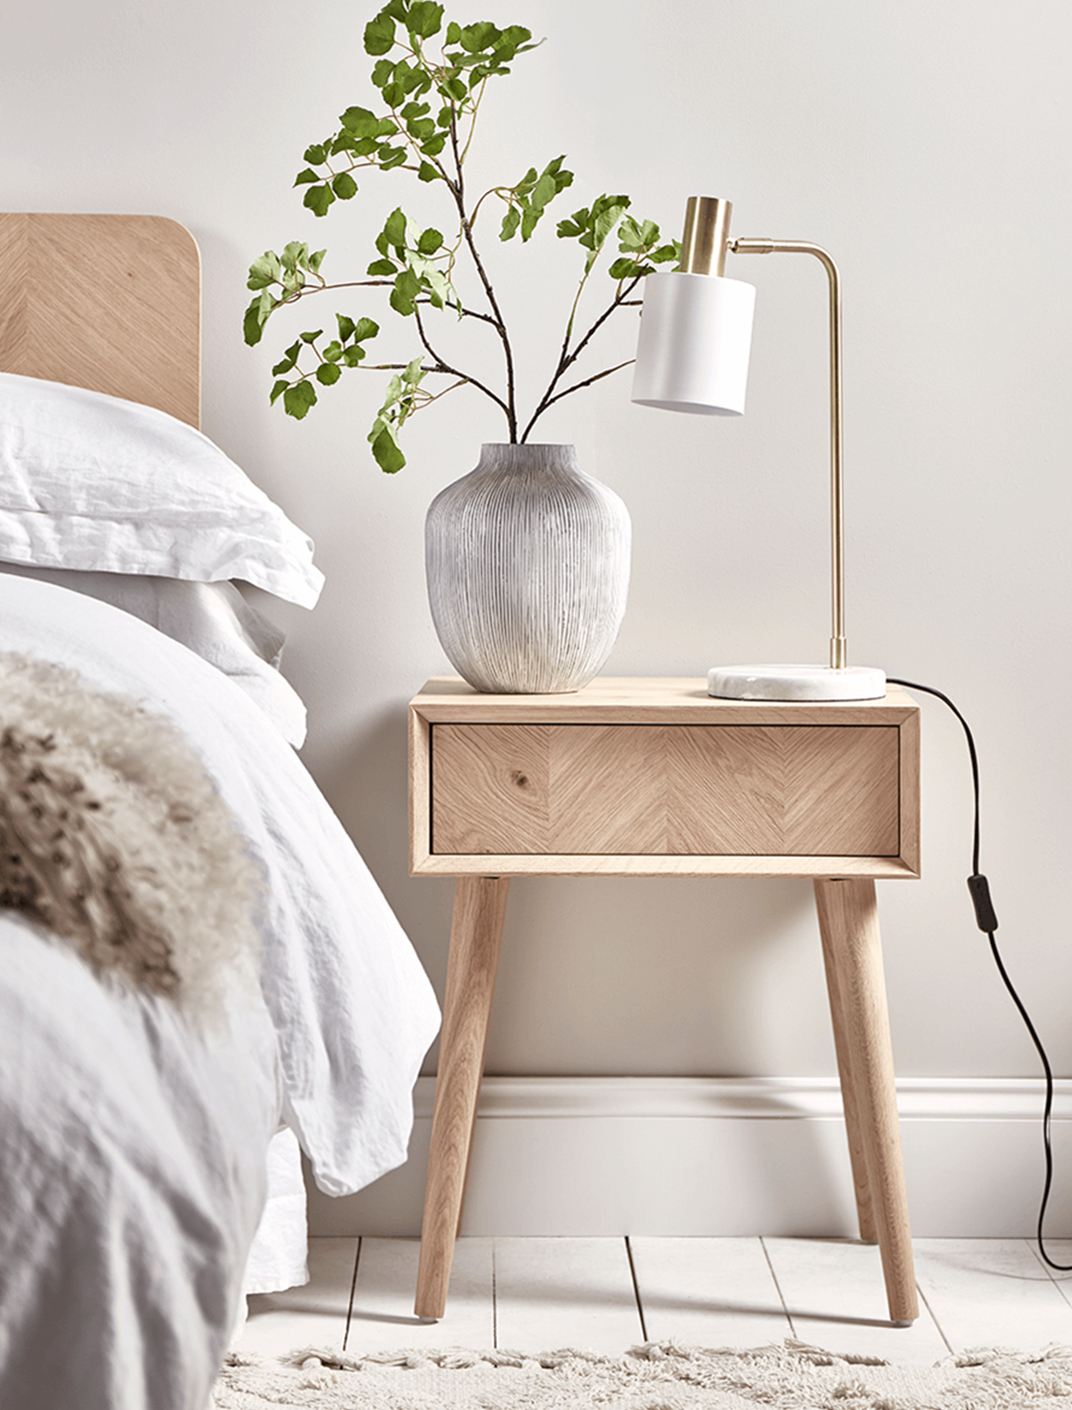 The Advantages of Having A Bedside Table